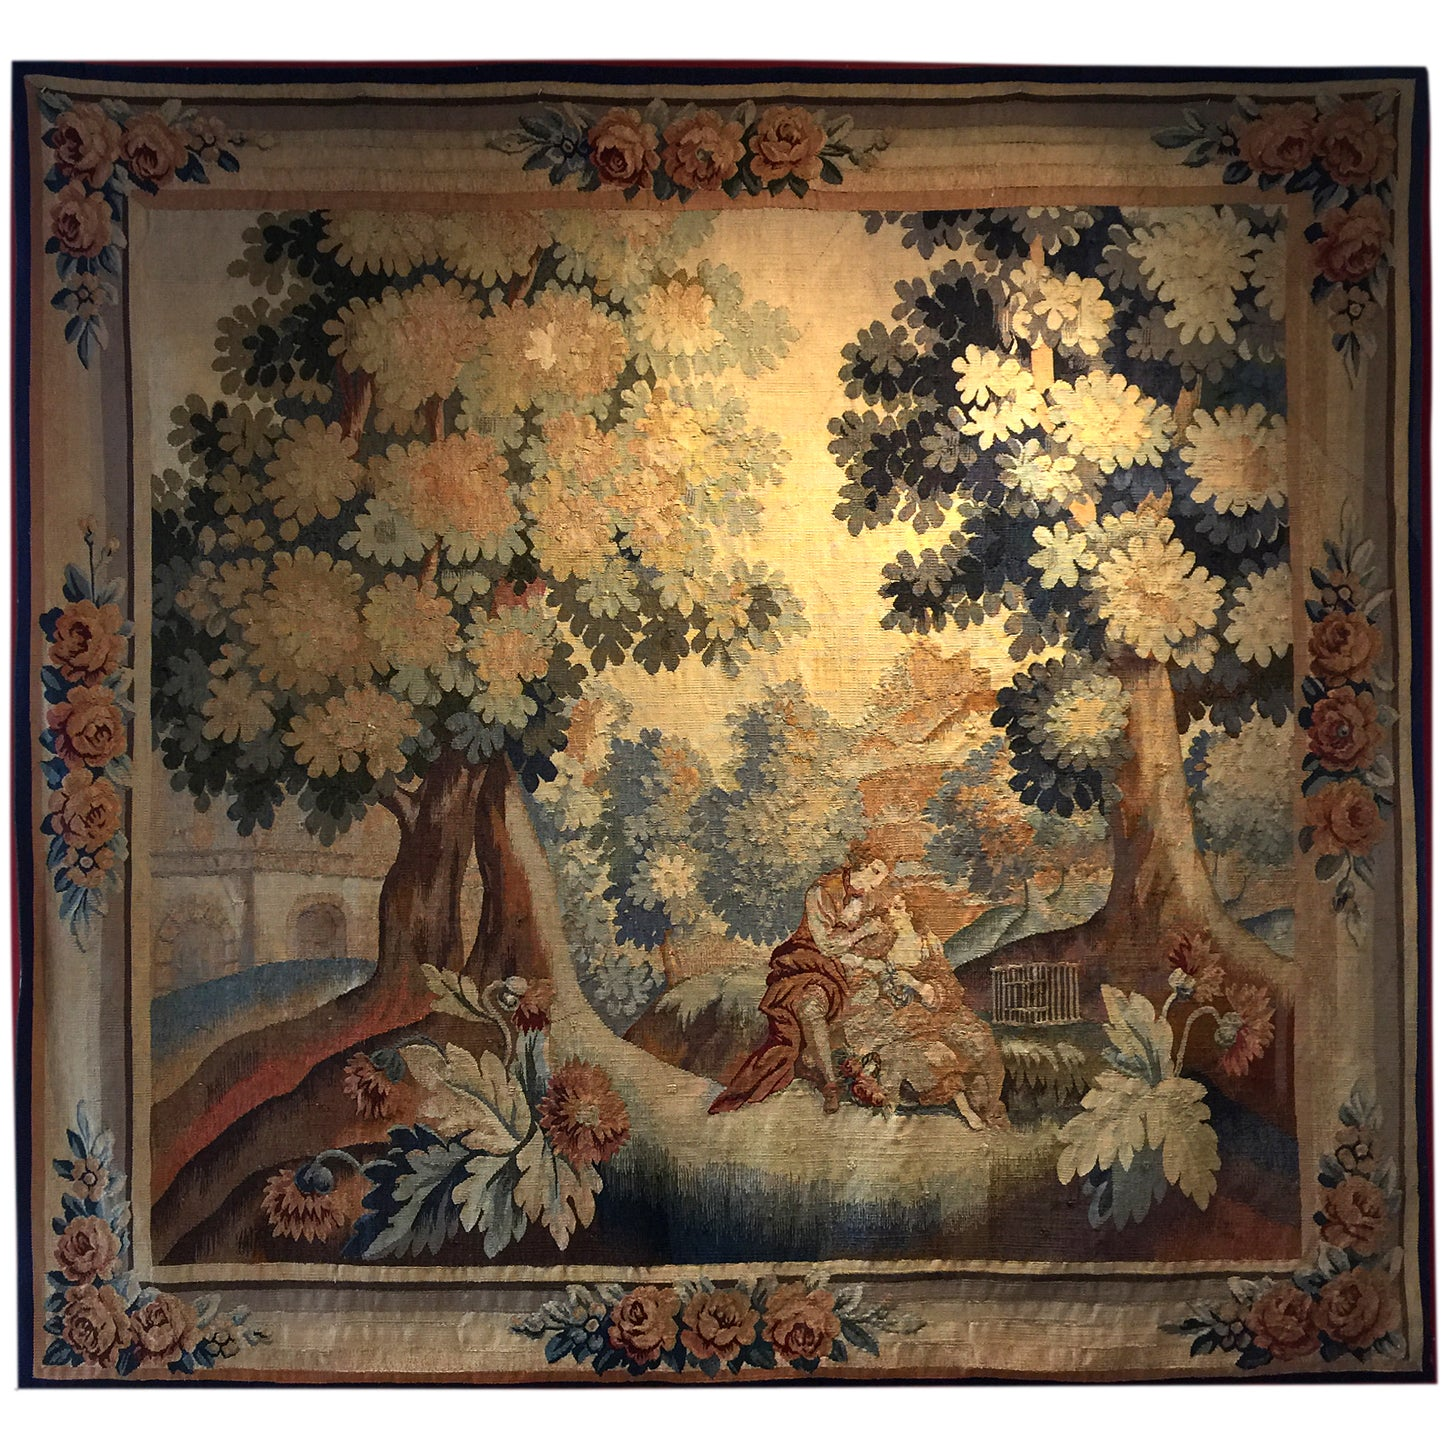 Antique Rugs, Tapestry Flemish Wall Decoration Object, Decorative rugs